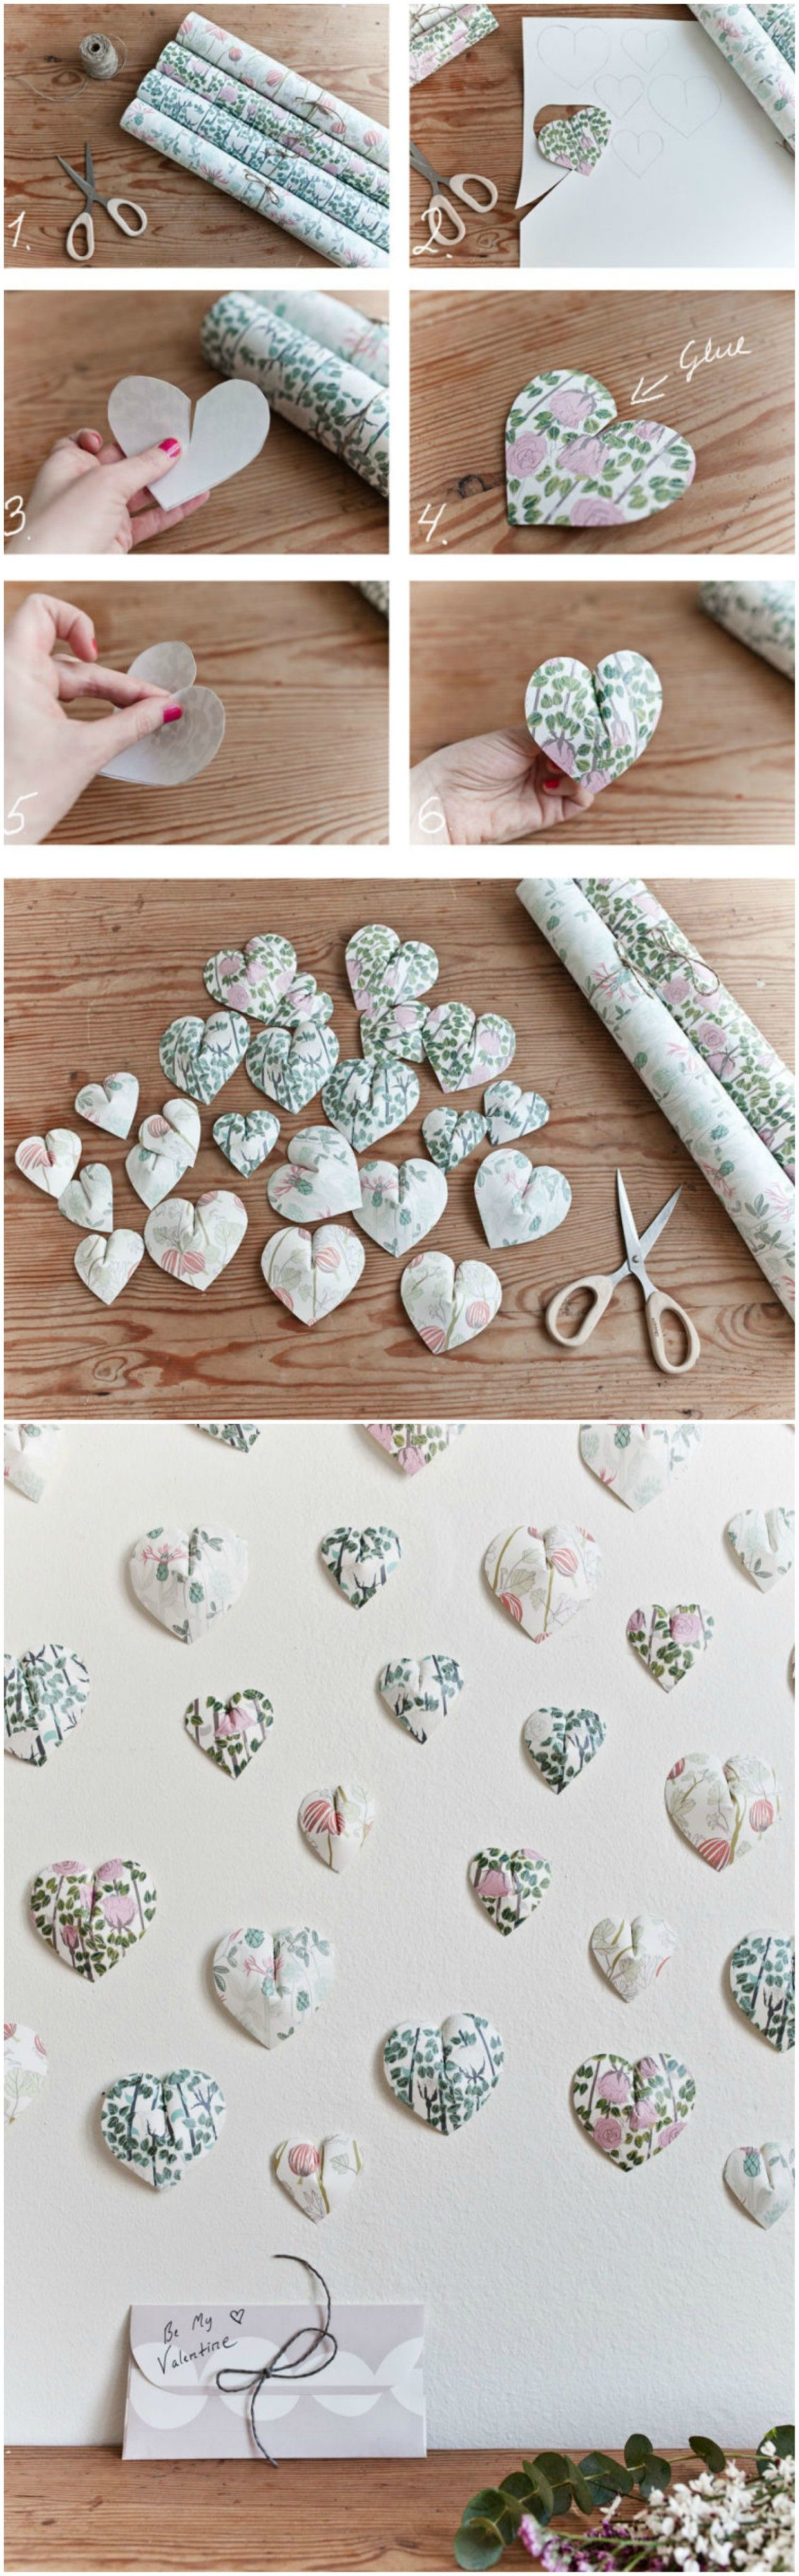 17+ Paper crafts for couples info